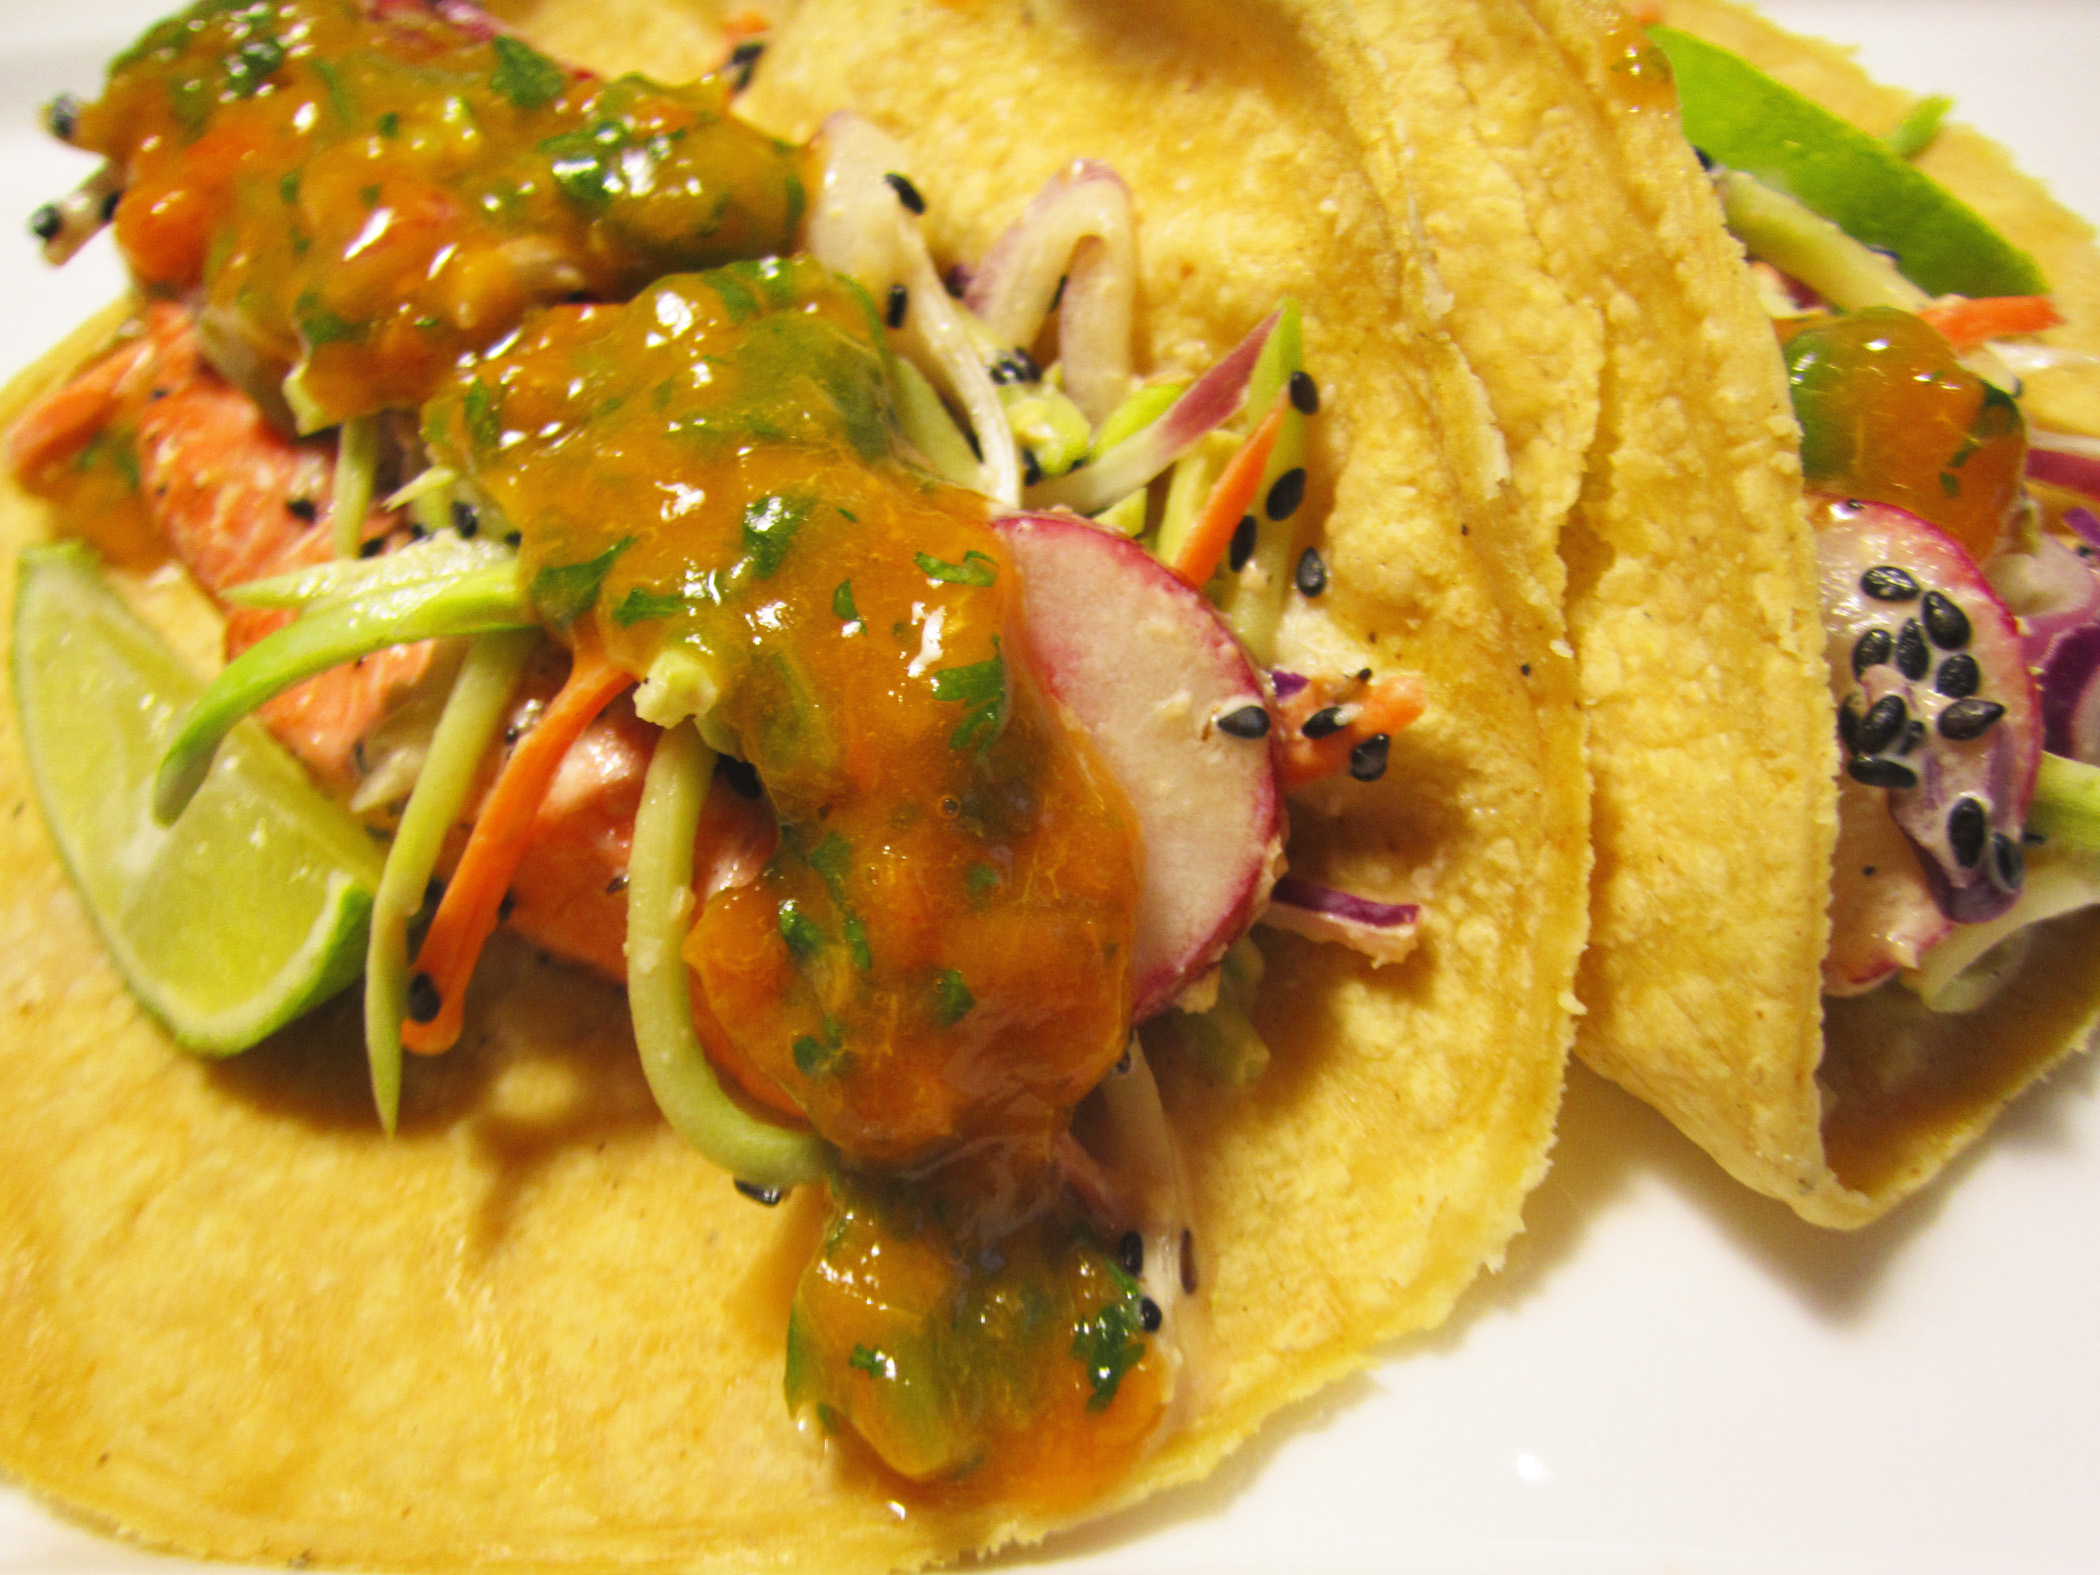 Salmon Tacos with Miso Broccoli Slaw and Apricot Salsa